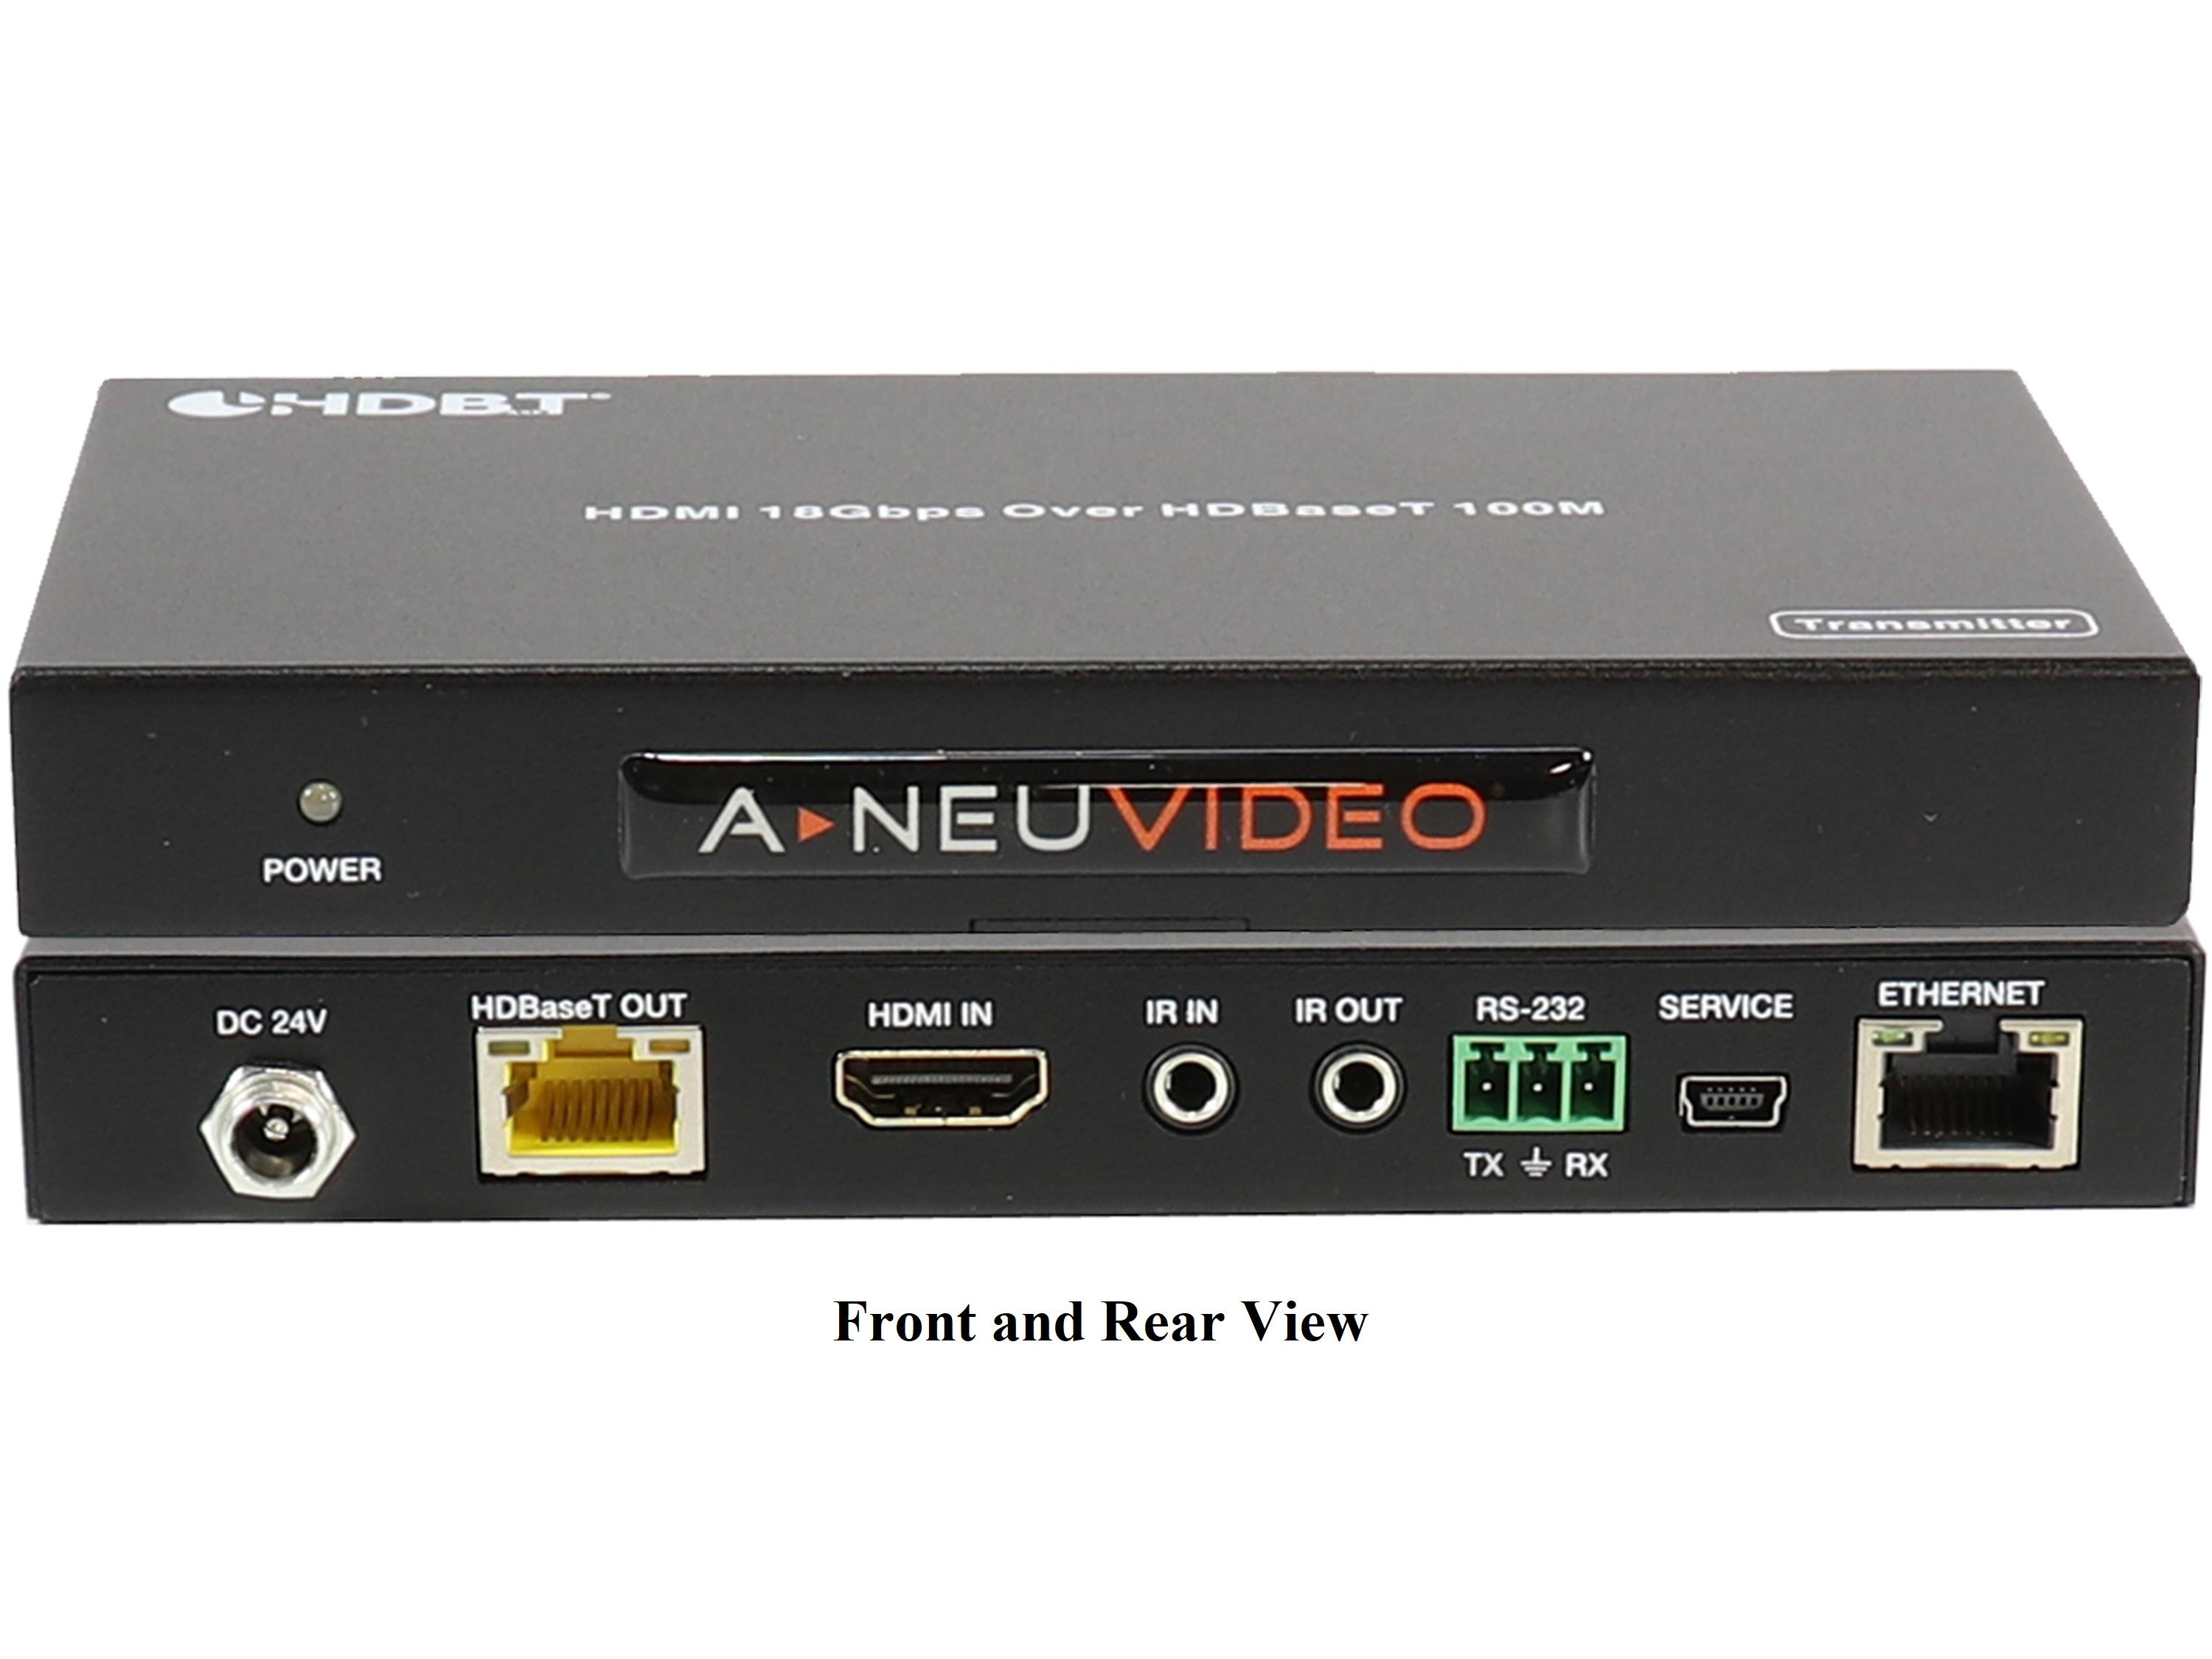 A-NeuVideo ANI-HDR-100 HDMI 4K PoH Extender (Transmitter/Receiver) over Cat5e/6